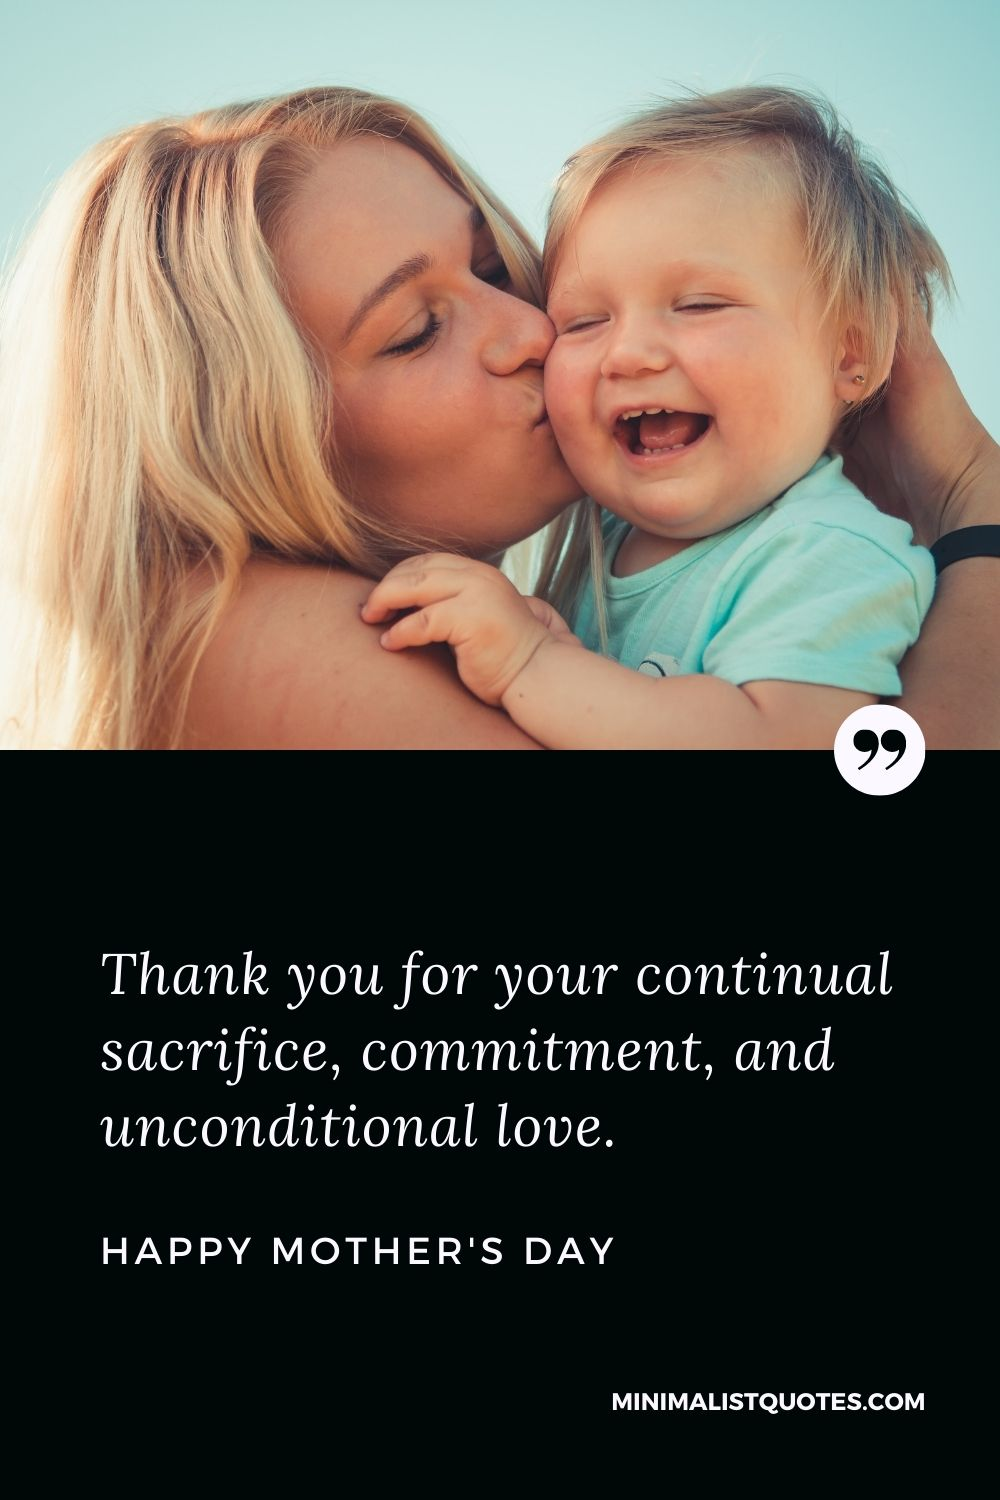 Mother's Day wish, message & quote with HD image: Thank you for your continual sacrifice, commitment, and unconditional love. Happy Mother's Day!